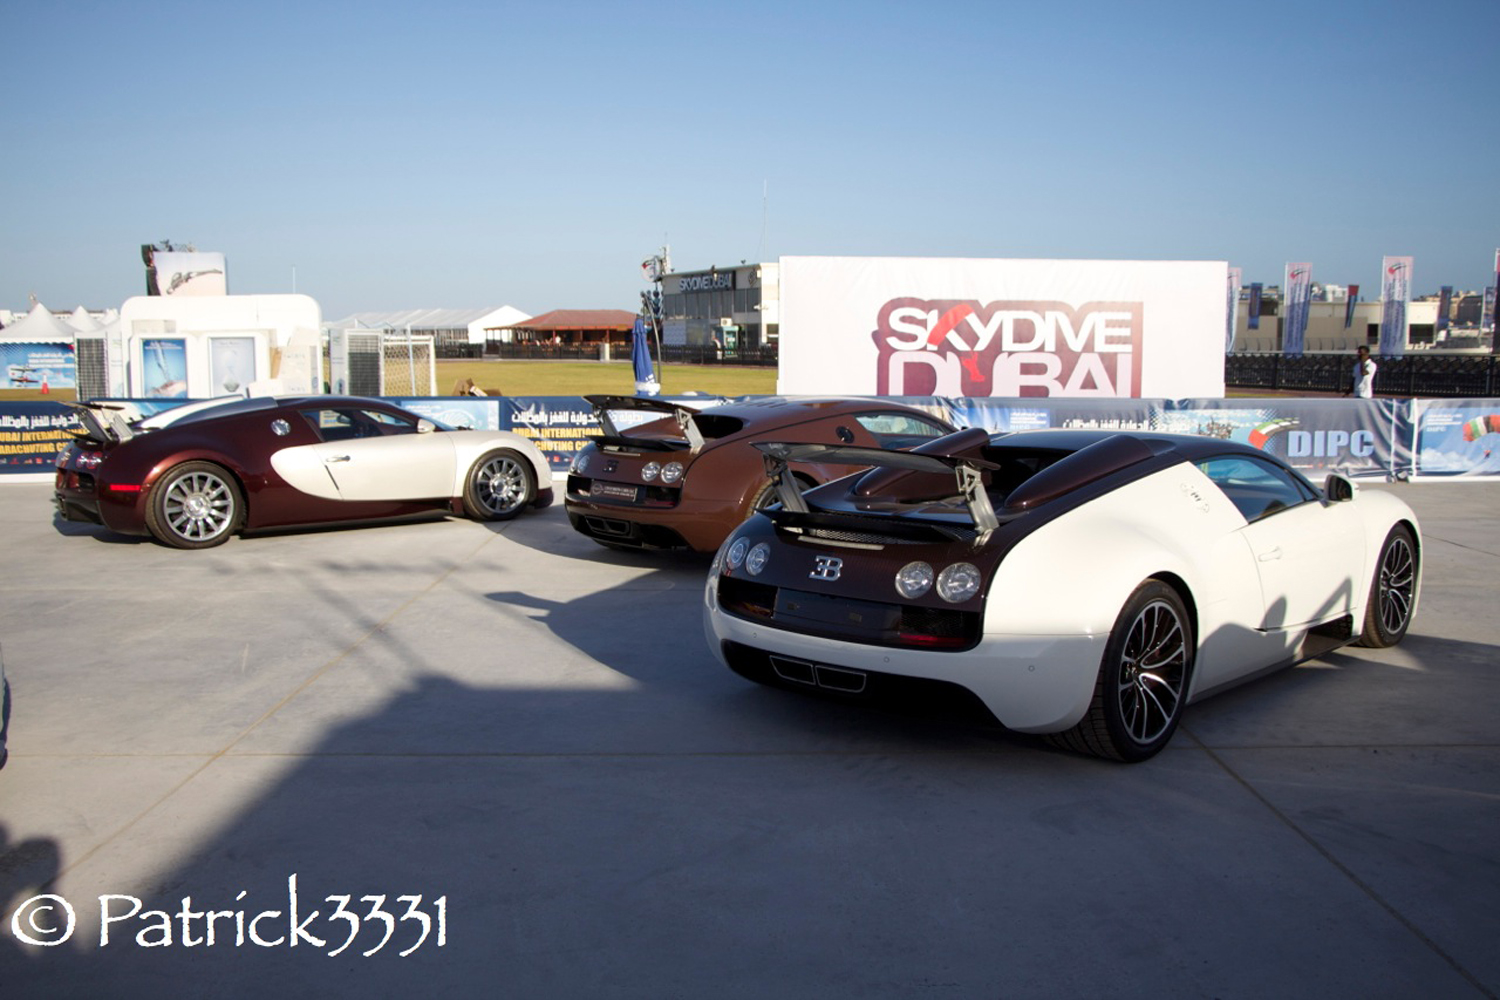 Supercars Get A Lot Of Attention During Dipc In Dubai